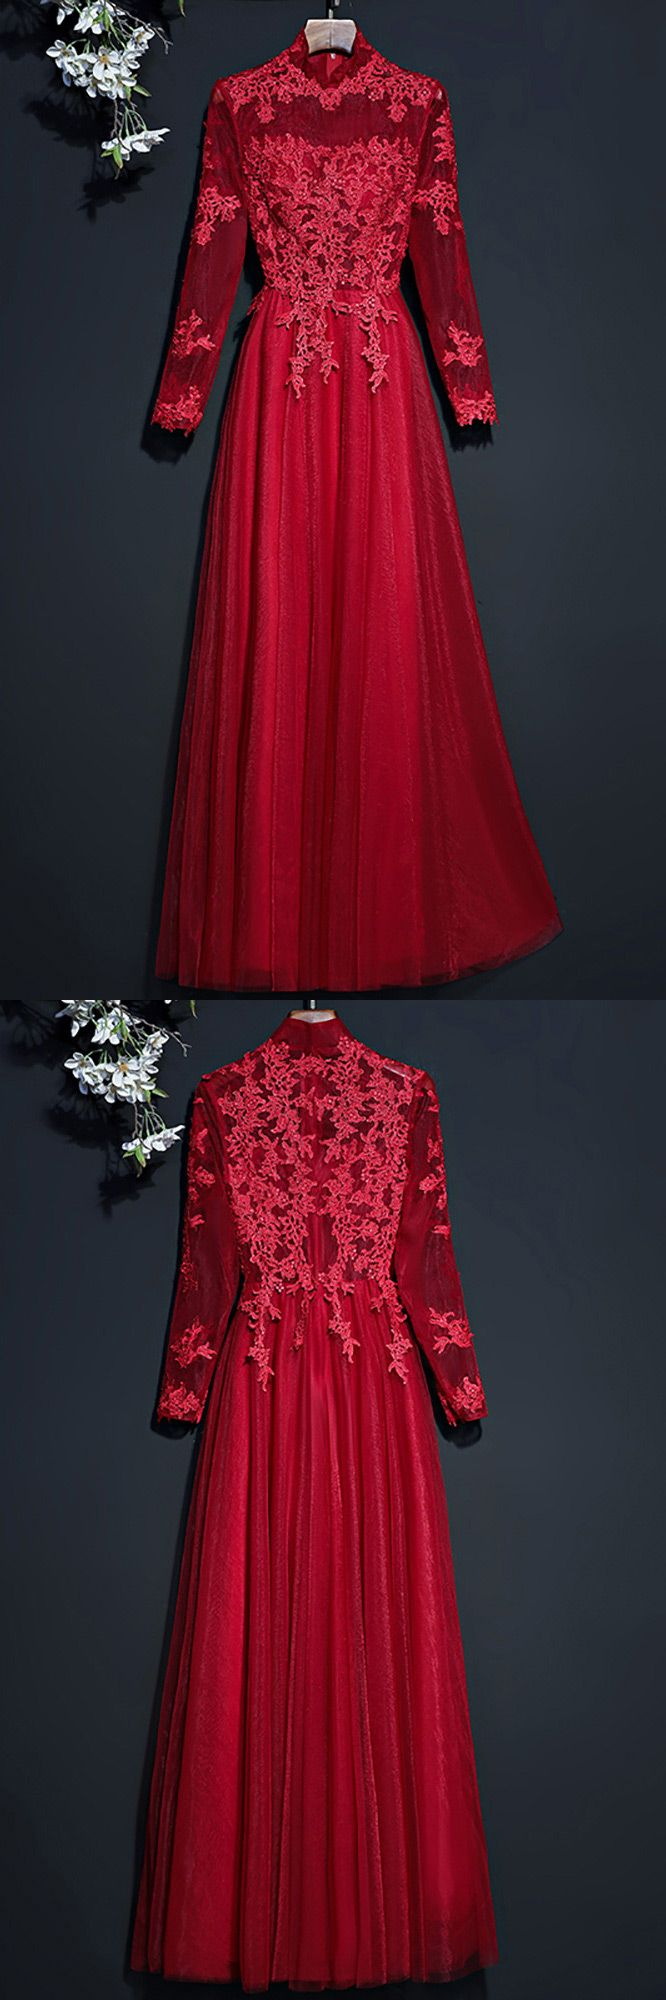 Vintage lace high neck prom party dress with long sleeves myx